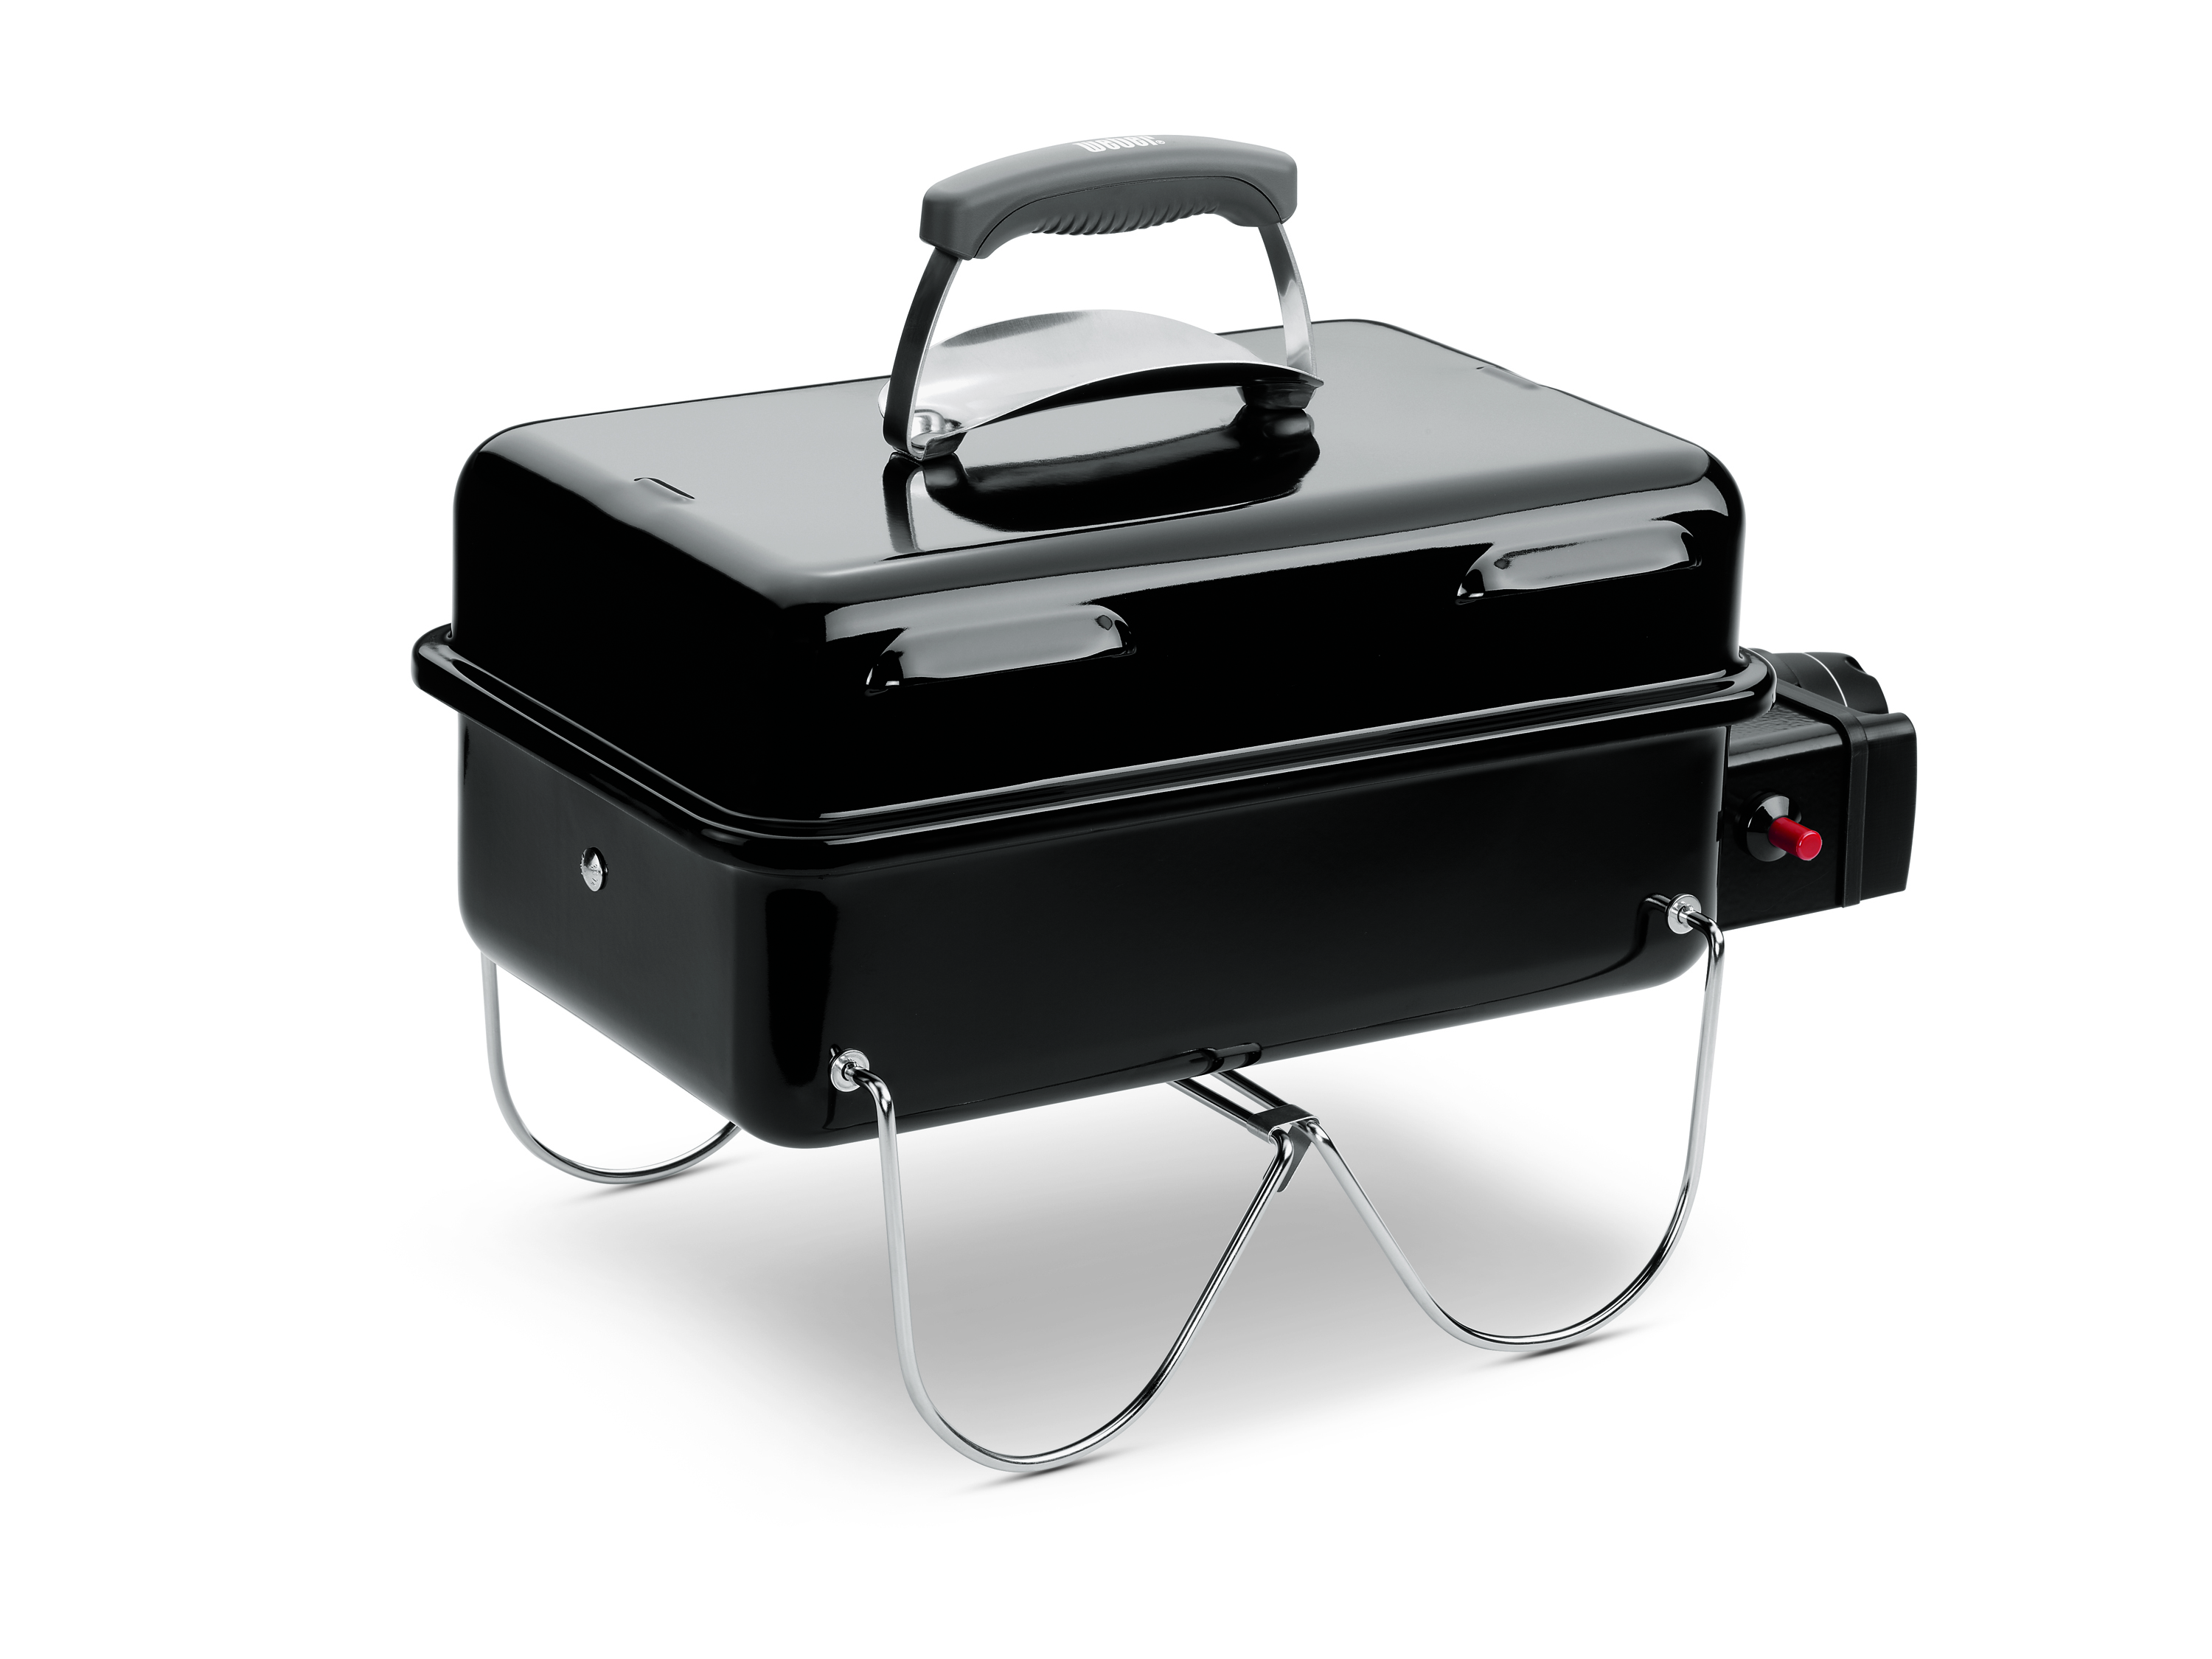 weber go anywhere gas black go anywhere gasgrill grills weber weber grills. Black Bedroom Furniture Sets. Home Design Ideas